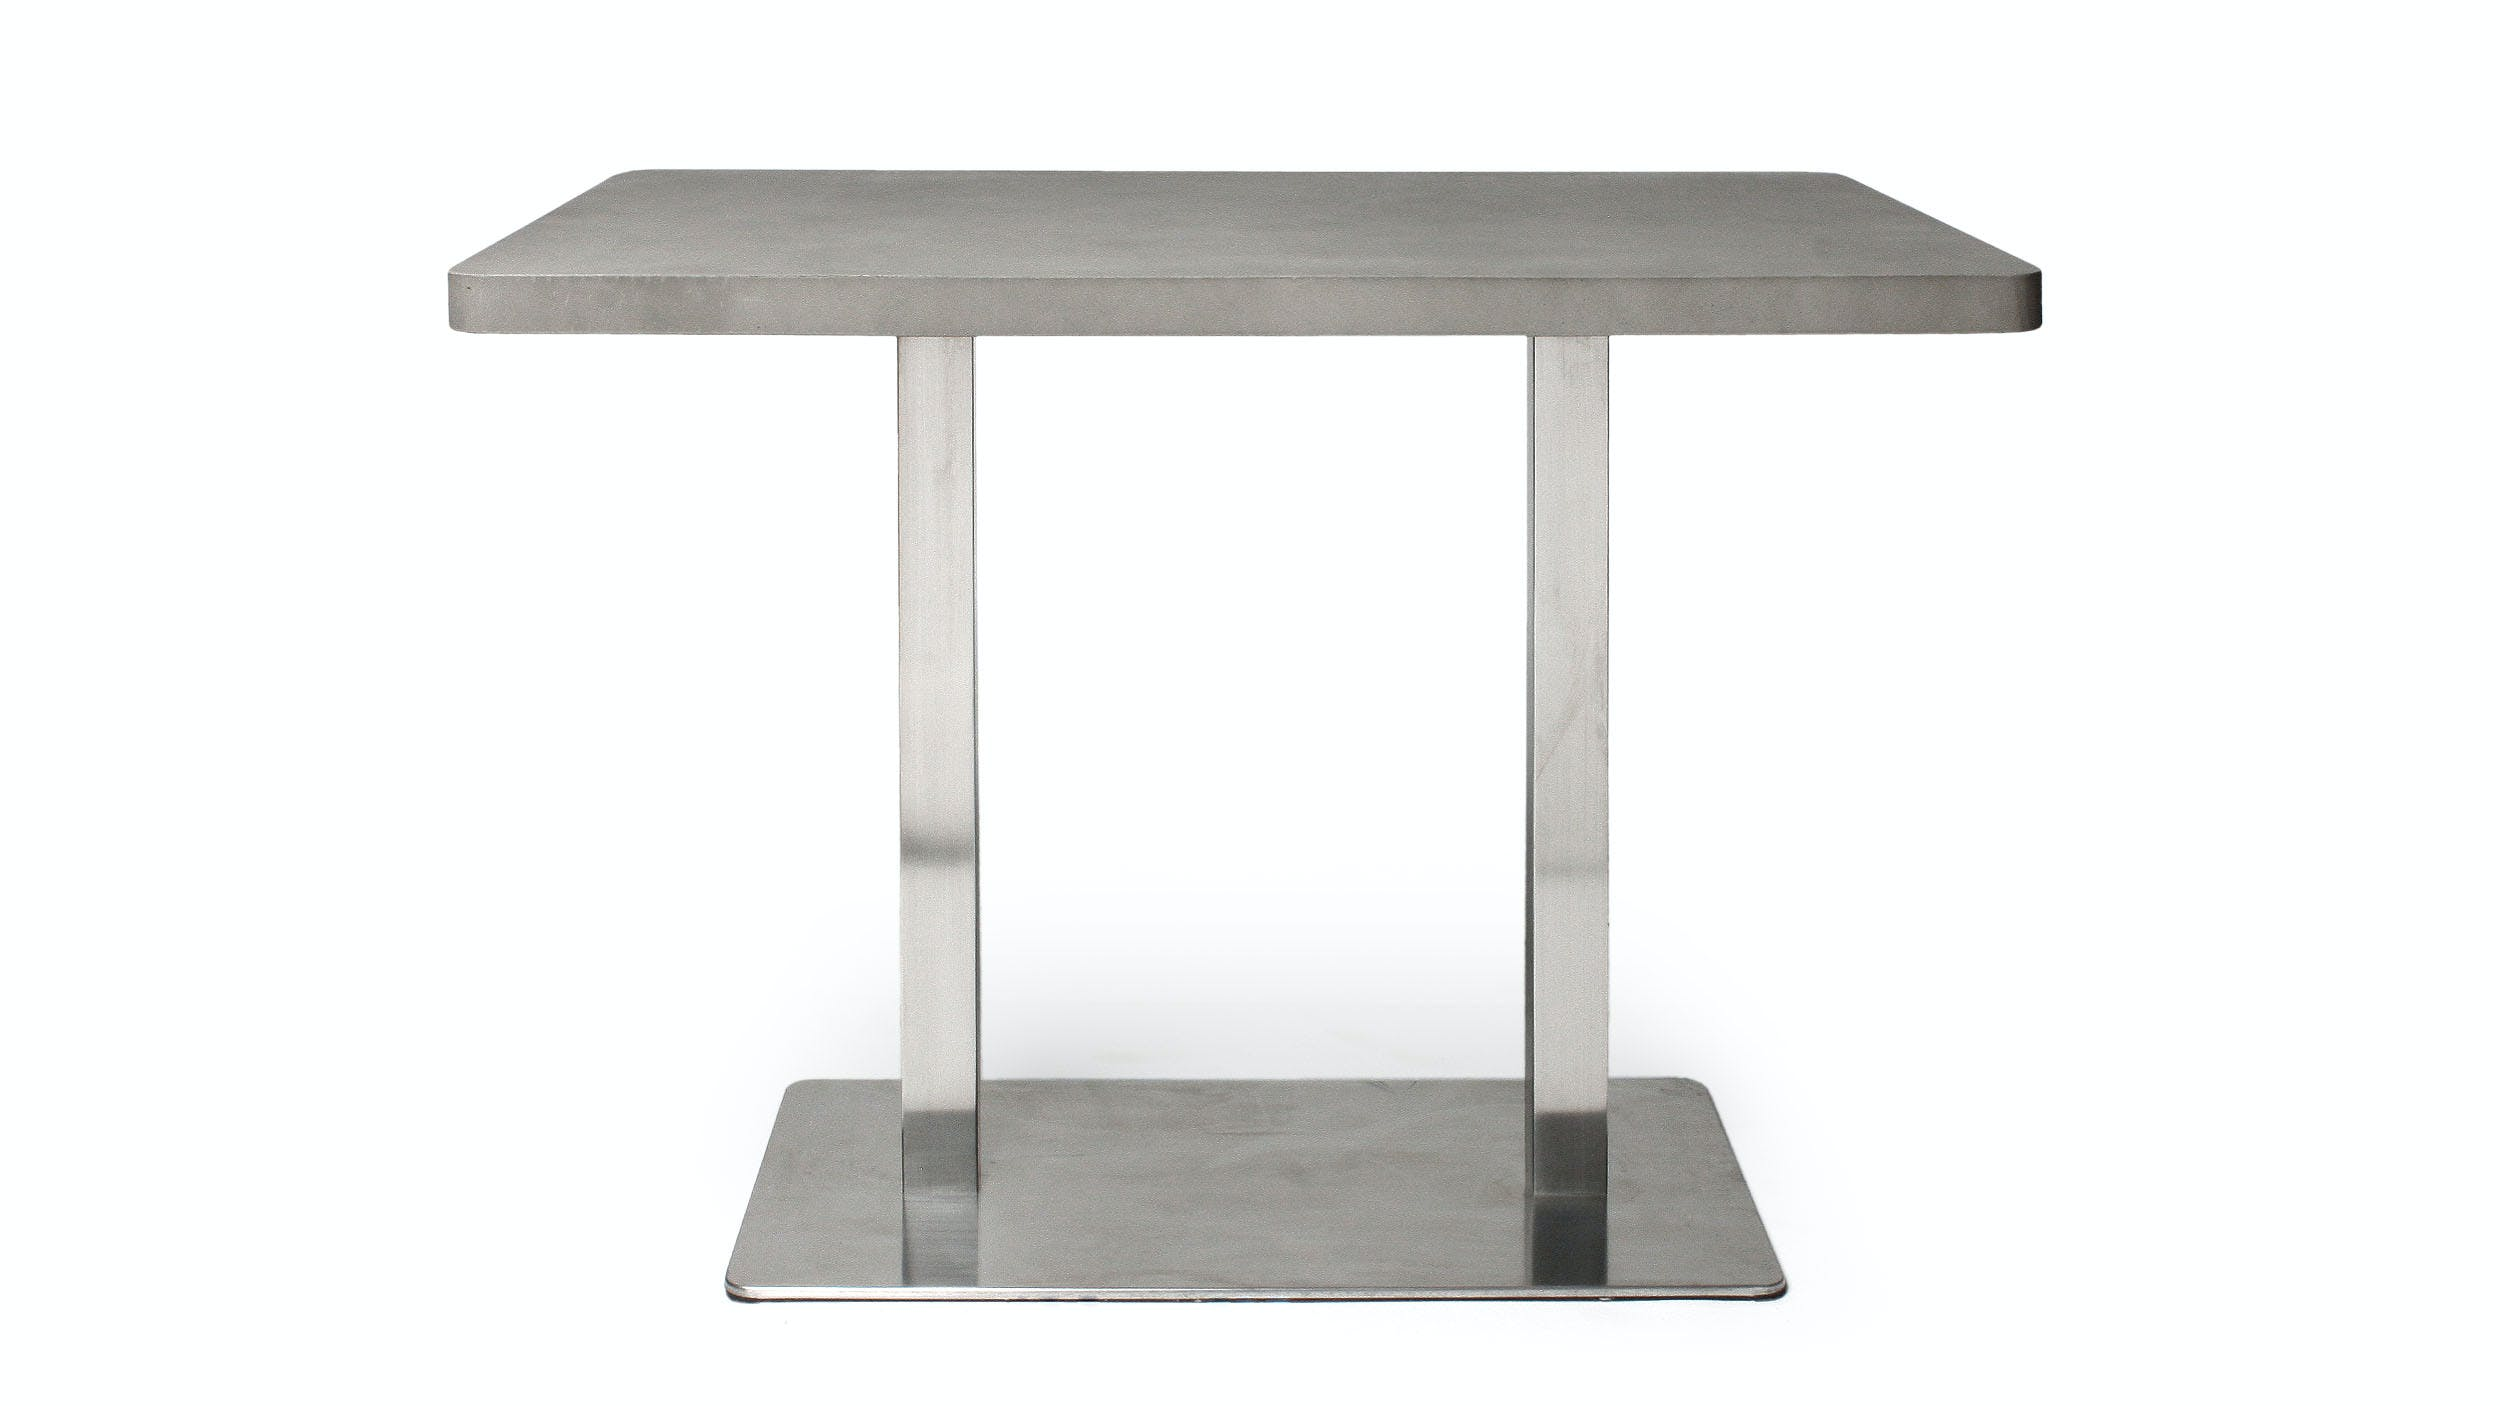 Dl 09072 Sl 106 1 Bistro Rectangular Dining Table 00002